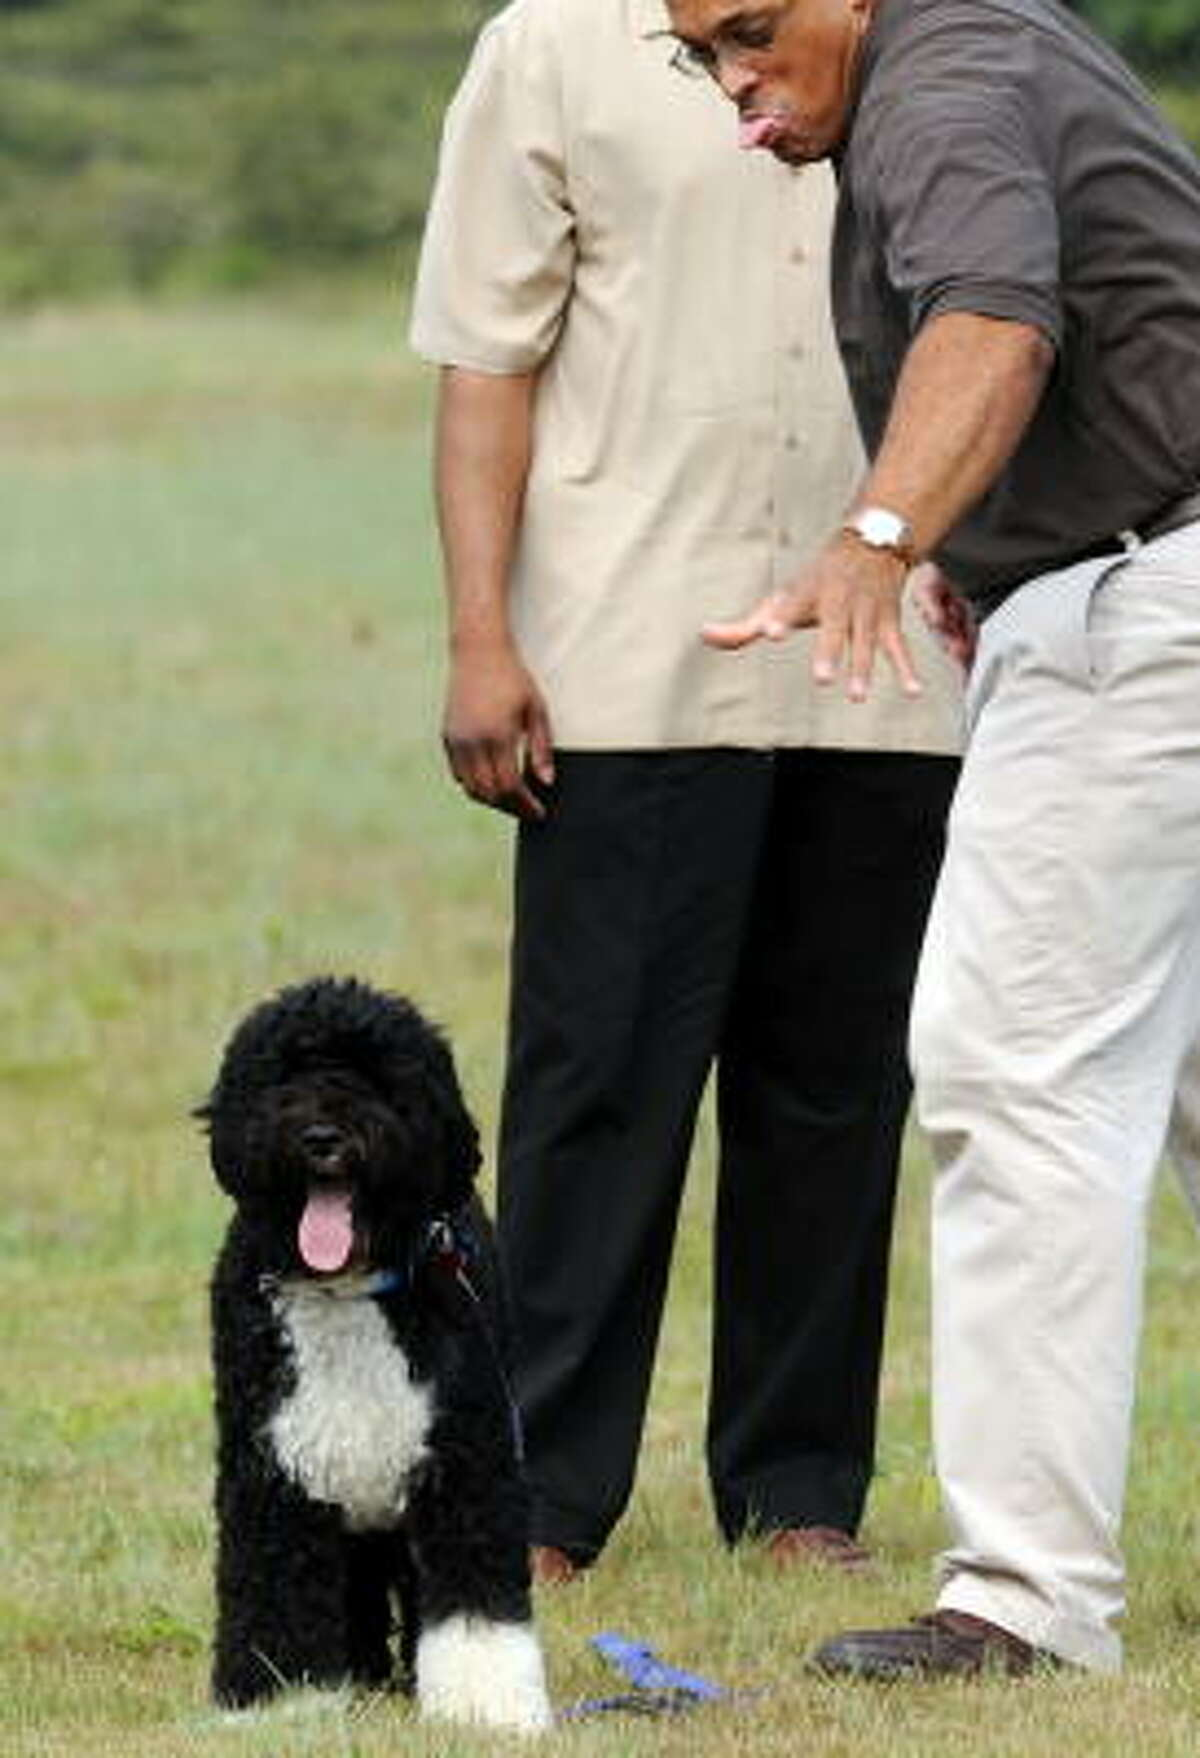 A White House staffer stretches to get hold of Bo as he arrives at the Cape Cod Coast Guard Air Station on Martha's Vineyard.